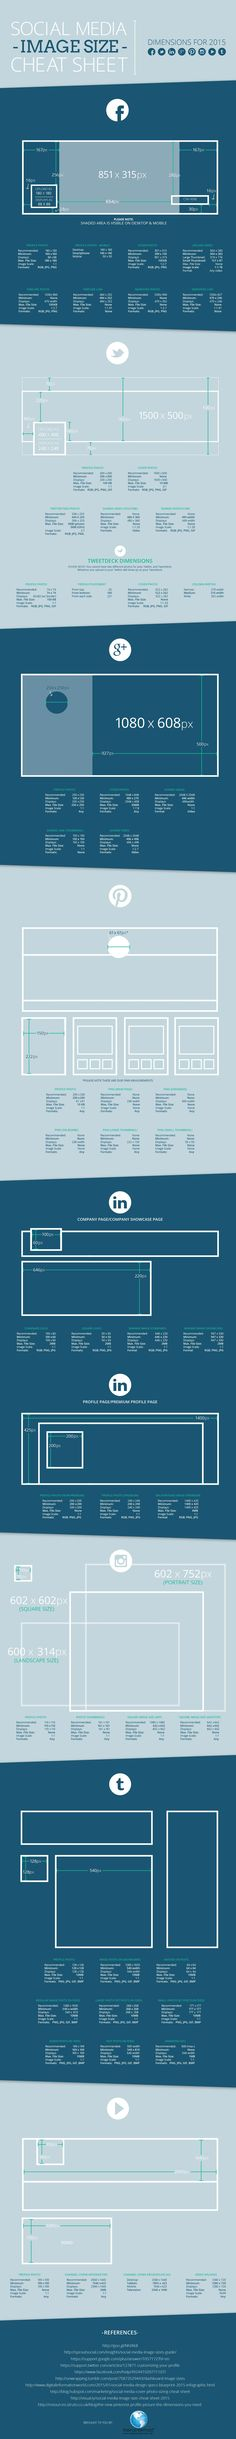 UPDATED as of September 2015! You can't create visuals to market on social media unless you know what size to make them, right? That's where this long, but extremely useful infographic comes in handy: http://blog.mainstreethost.com/social-media-image-size-cheat-sheet